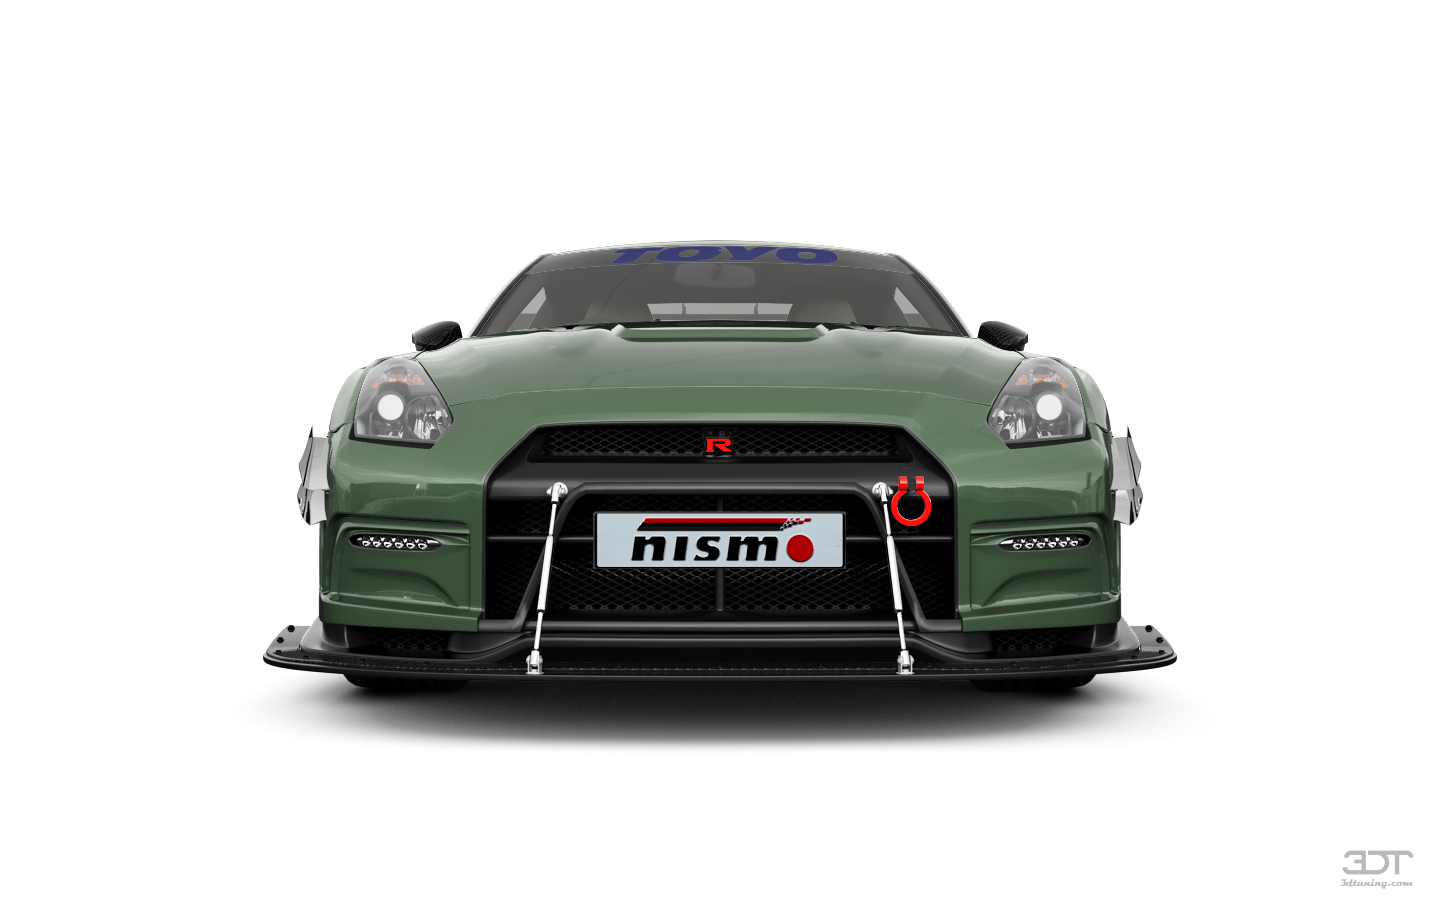 Nissan GT-R'10 by King Kong